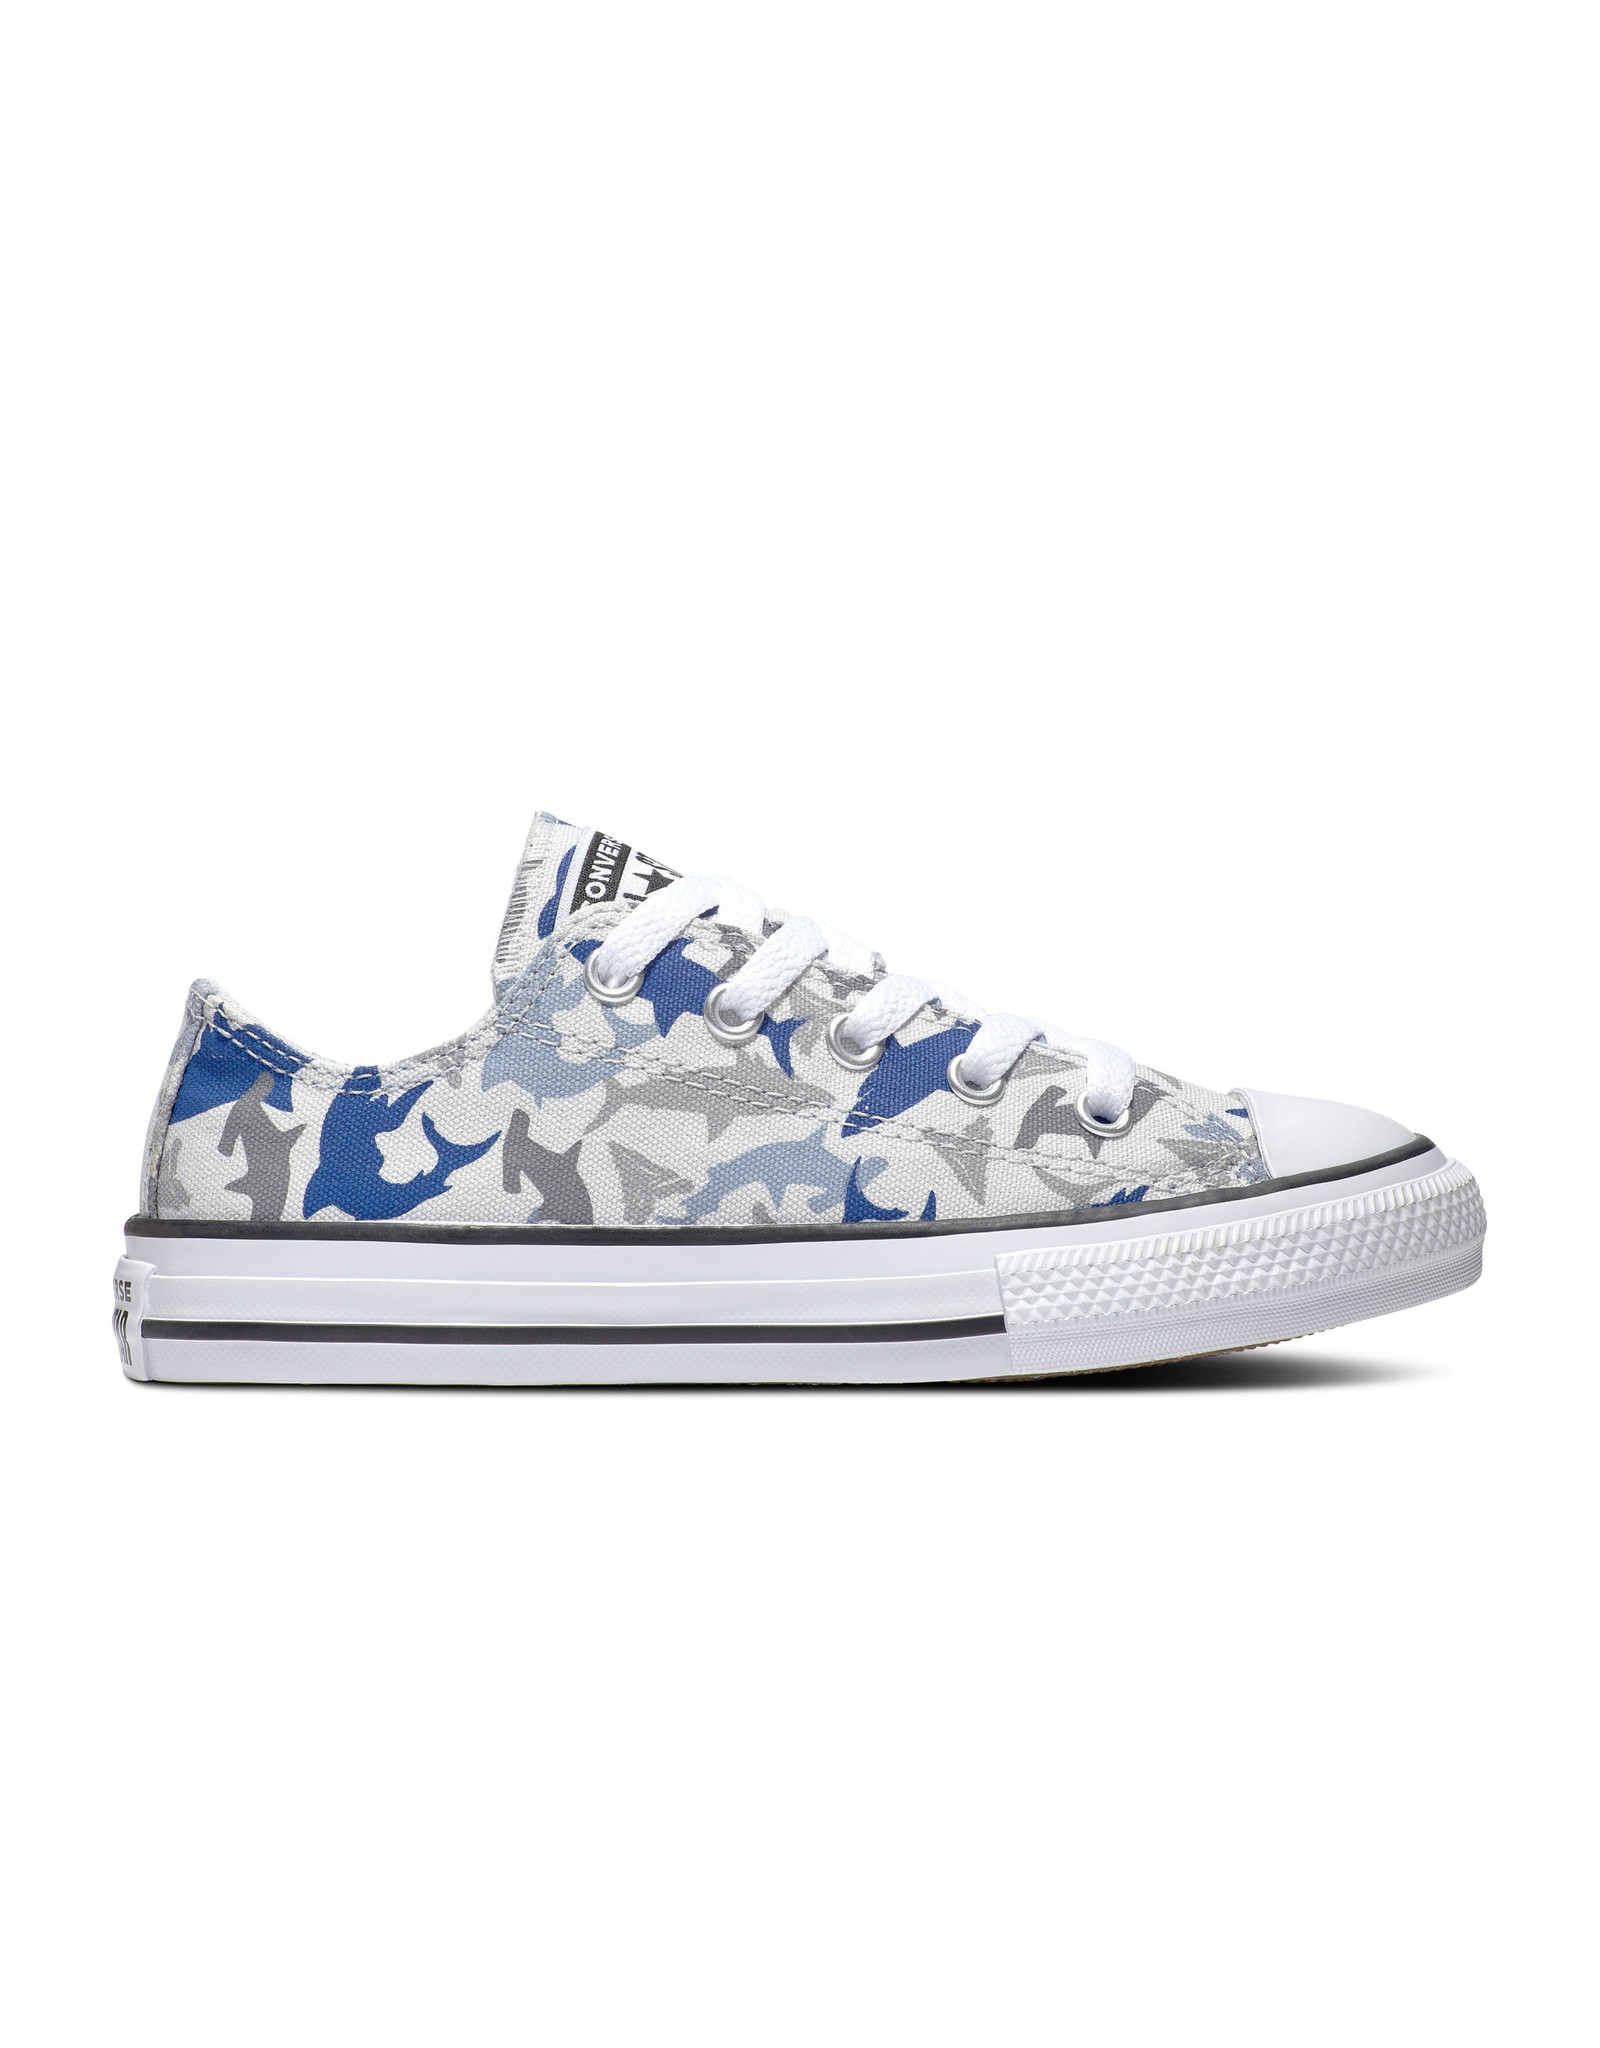 CONVERSE CHUCK TAYLOR ALL STAR  OX PHOTON DUST/RUSH BLUE/WHITE CAQUA-666890C